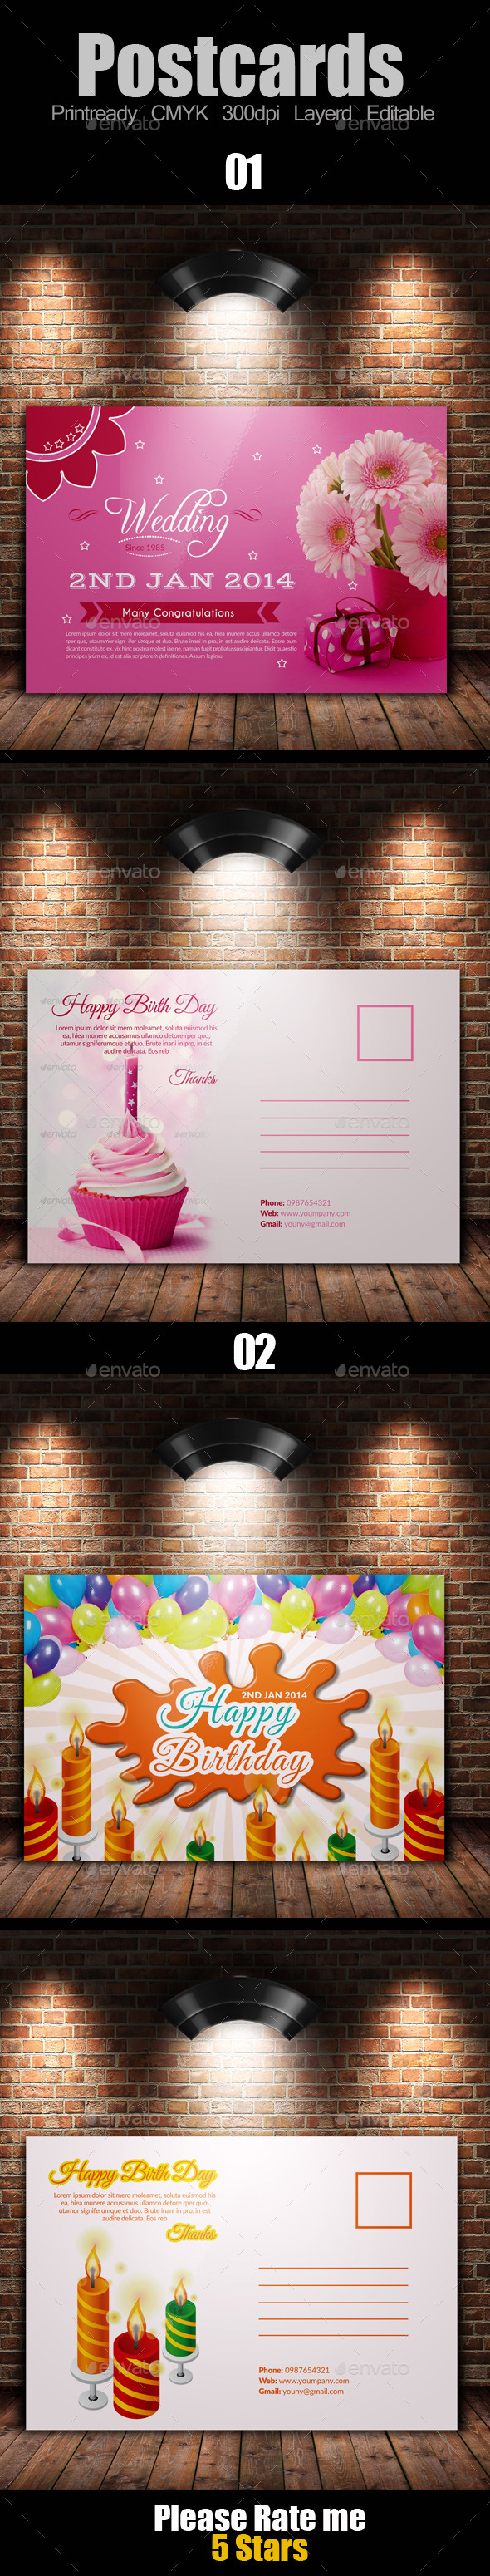 Birth Day Invitation Postcard Bundle - Cards & Invites Print Templates